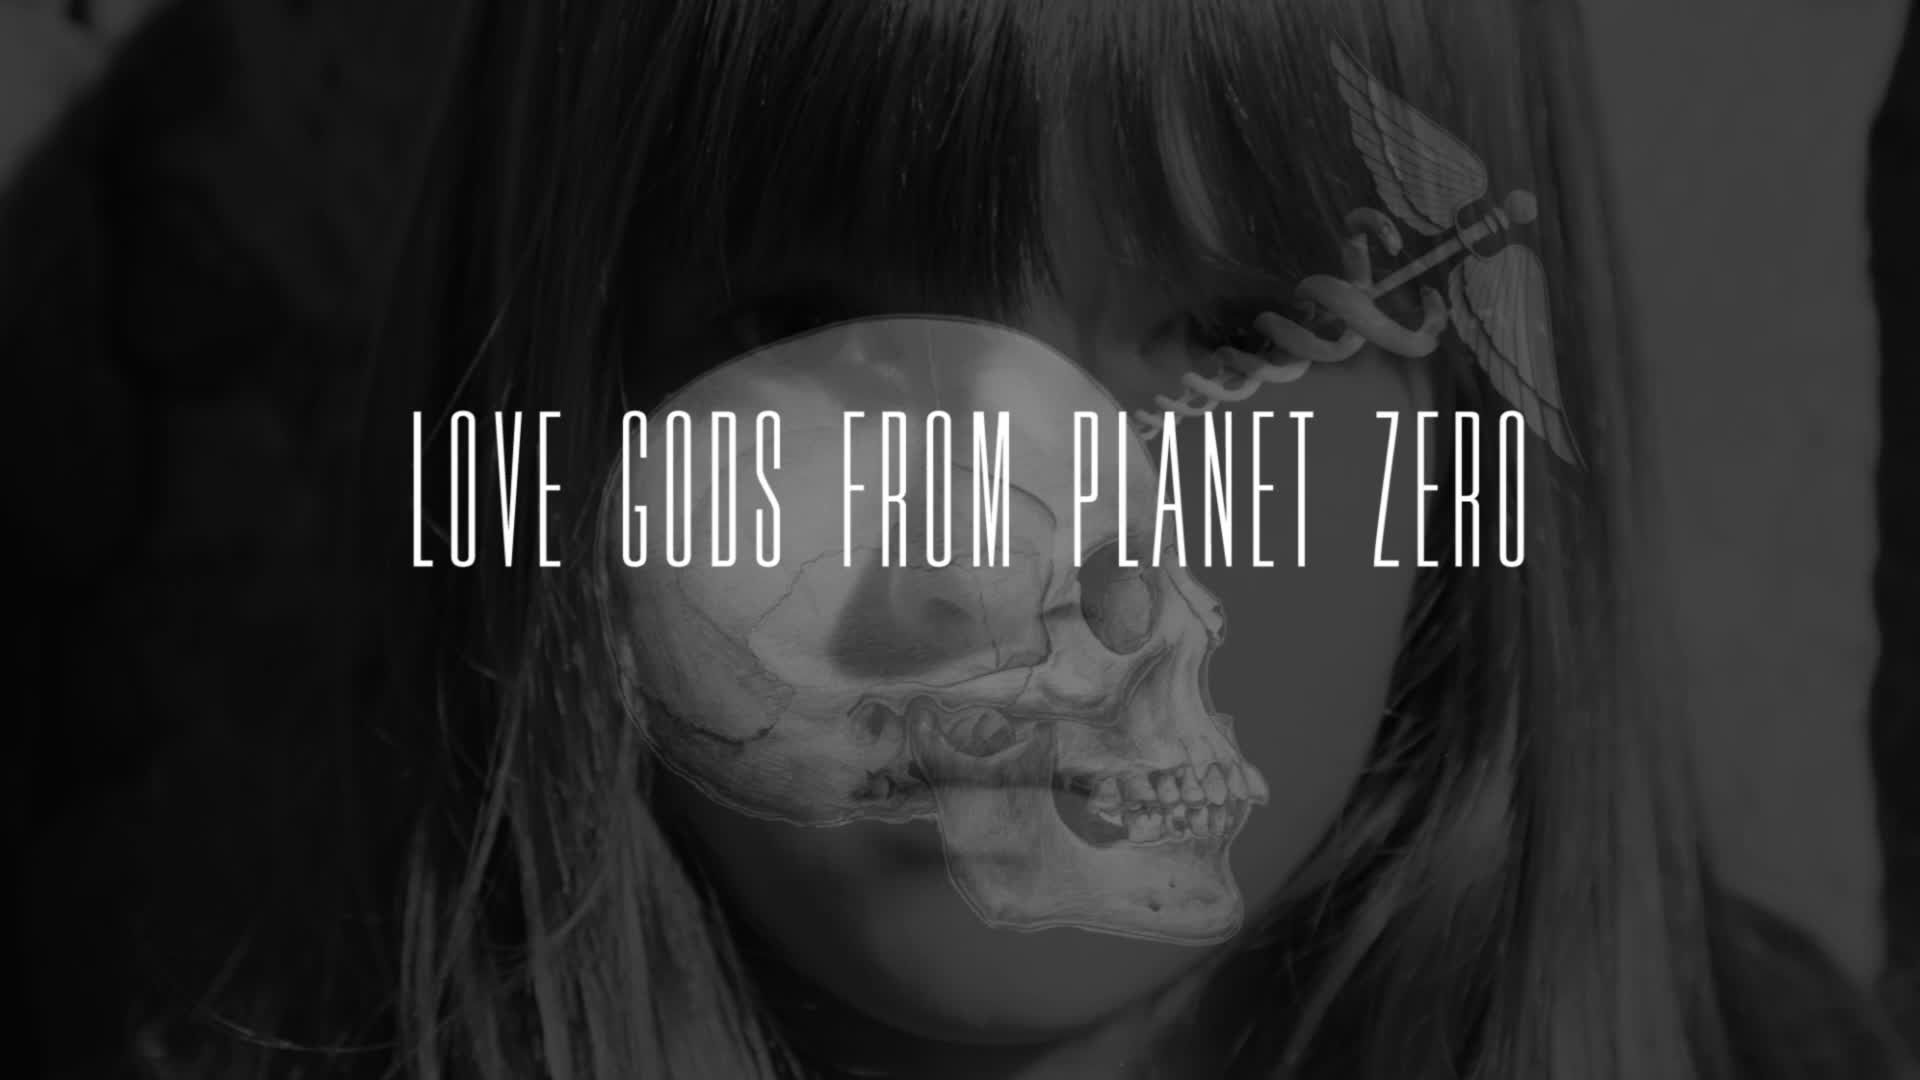 The Love Gods from Planet Zero